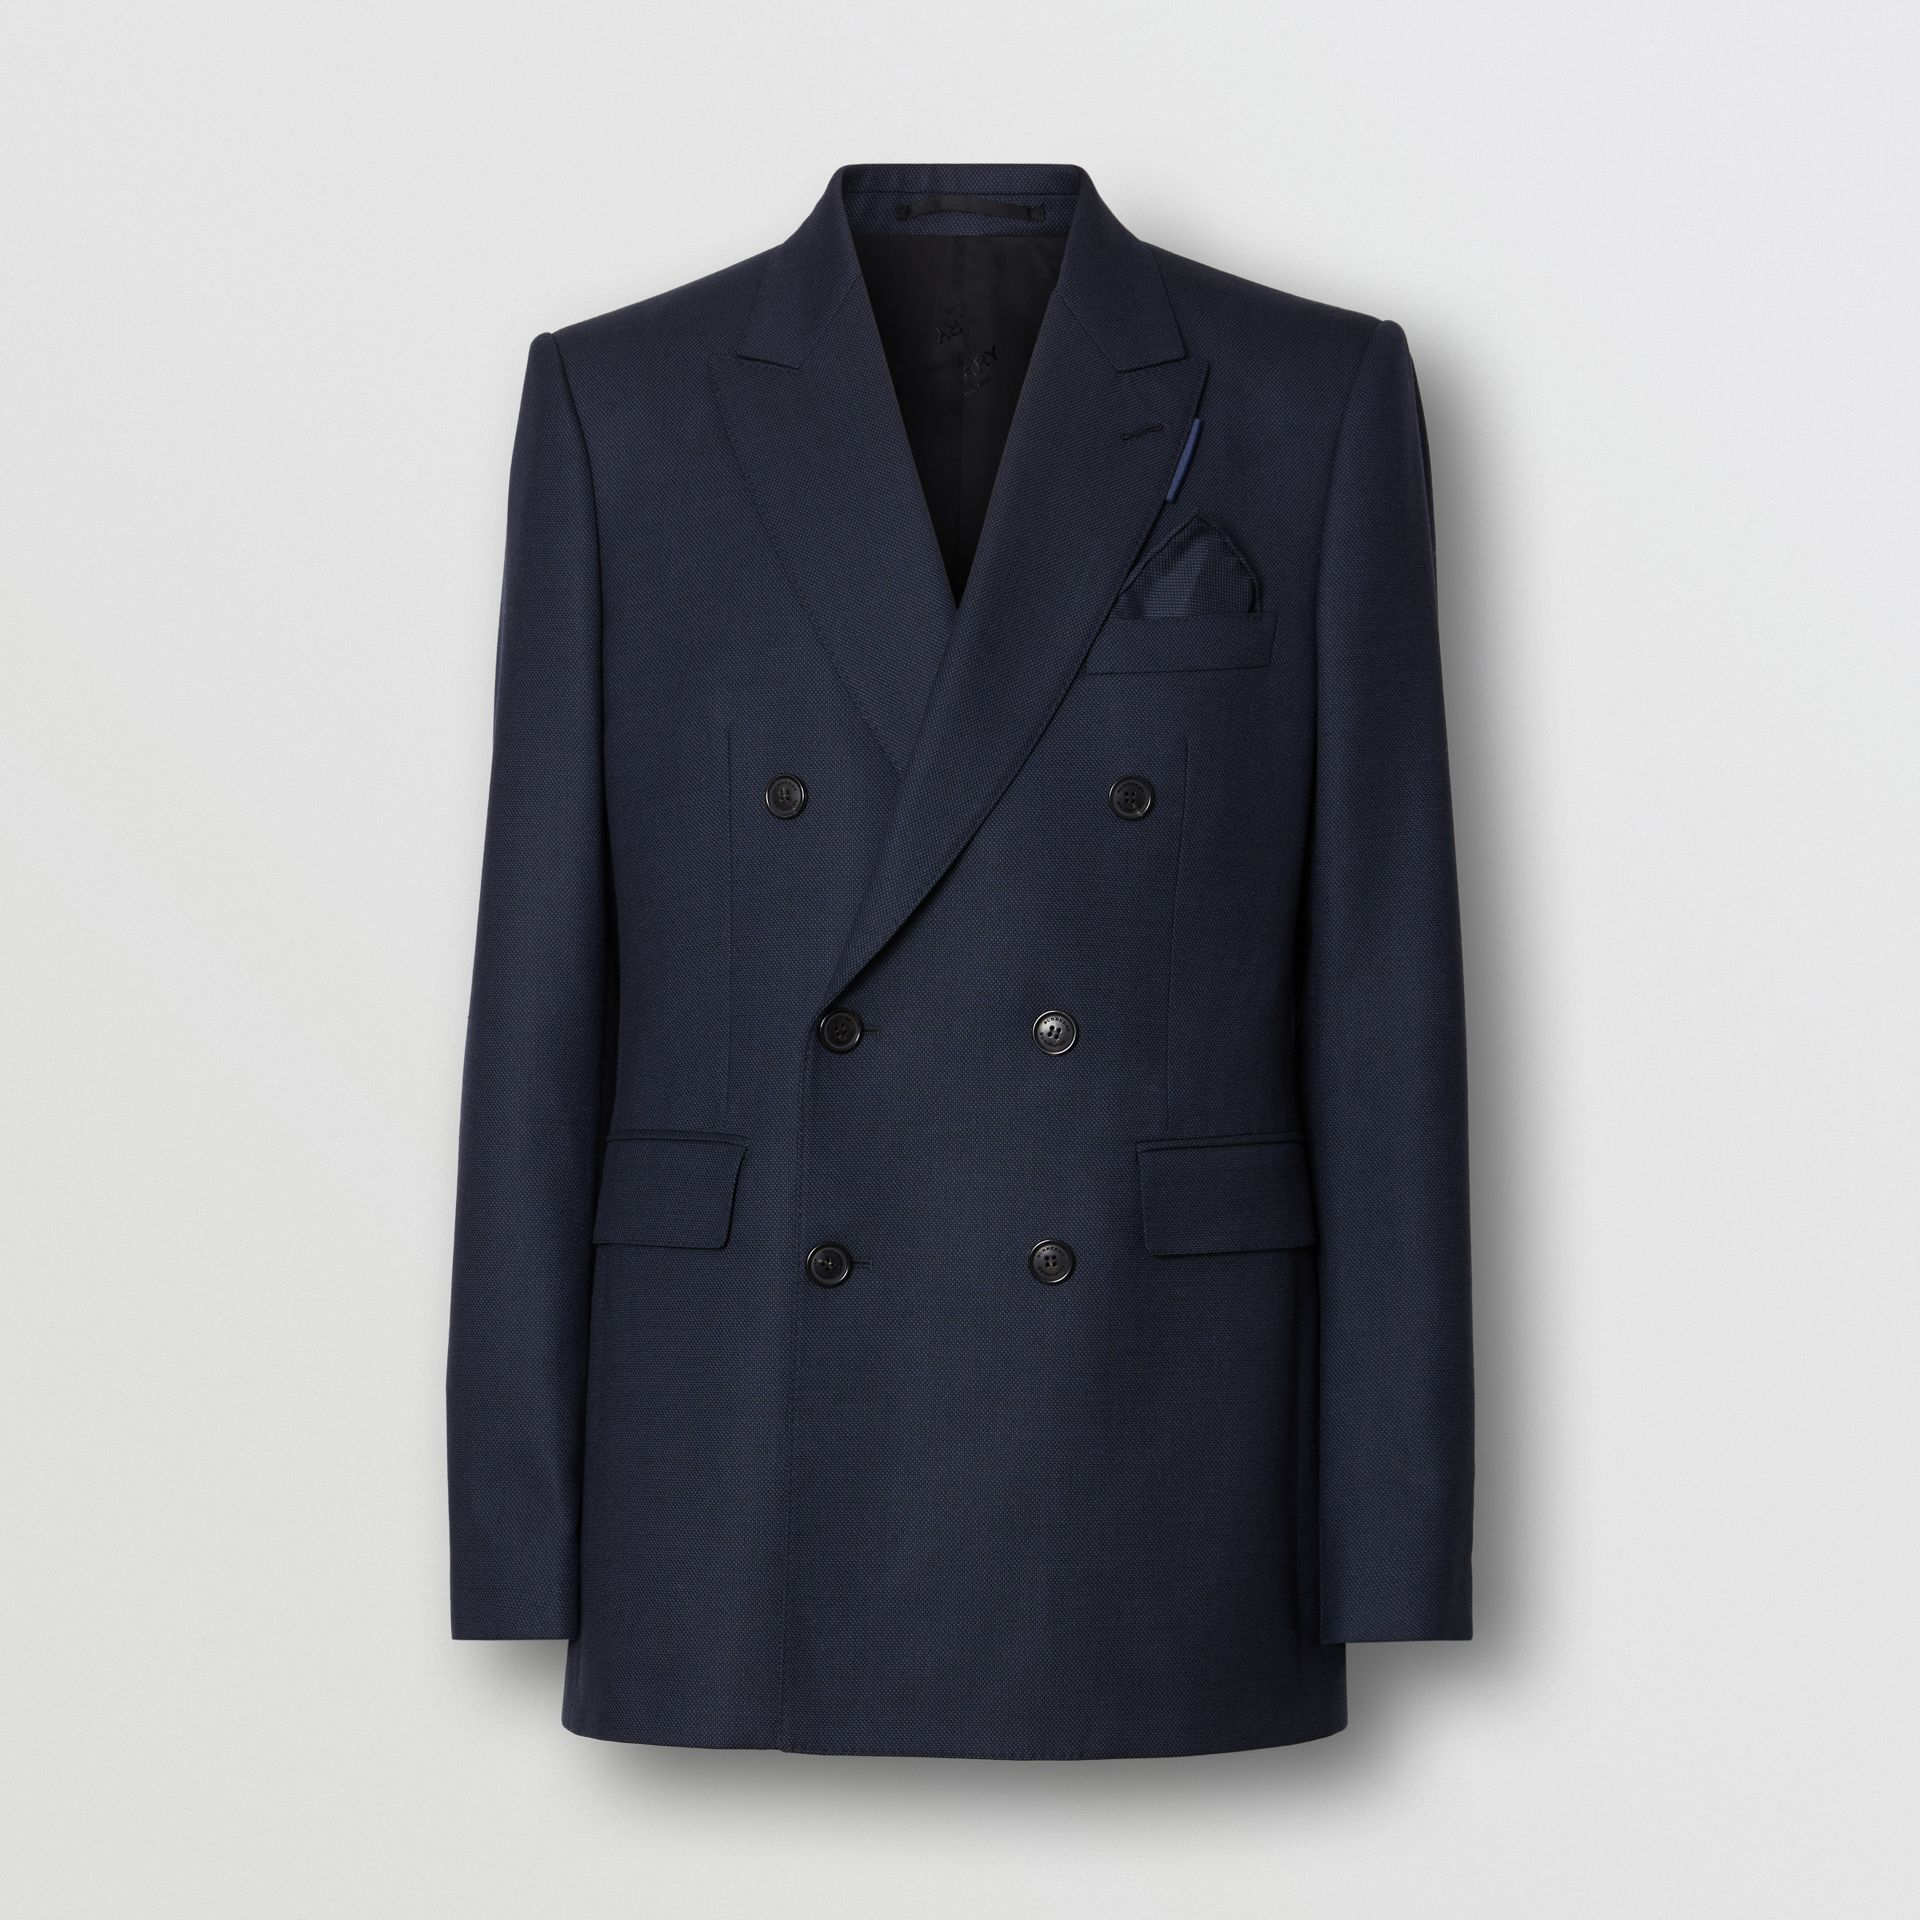 English Fit Birdseye Wool Cashmere Suit in Navy Blue | Burberry - gallery image 3